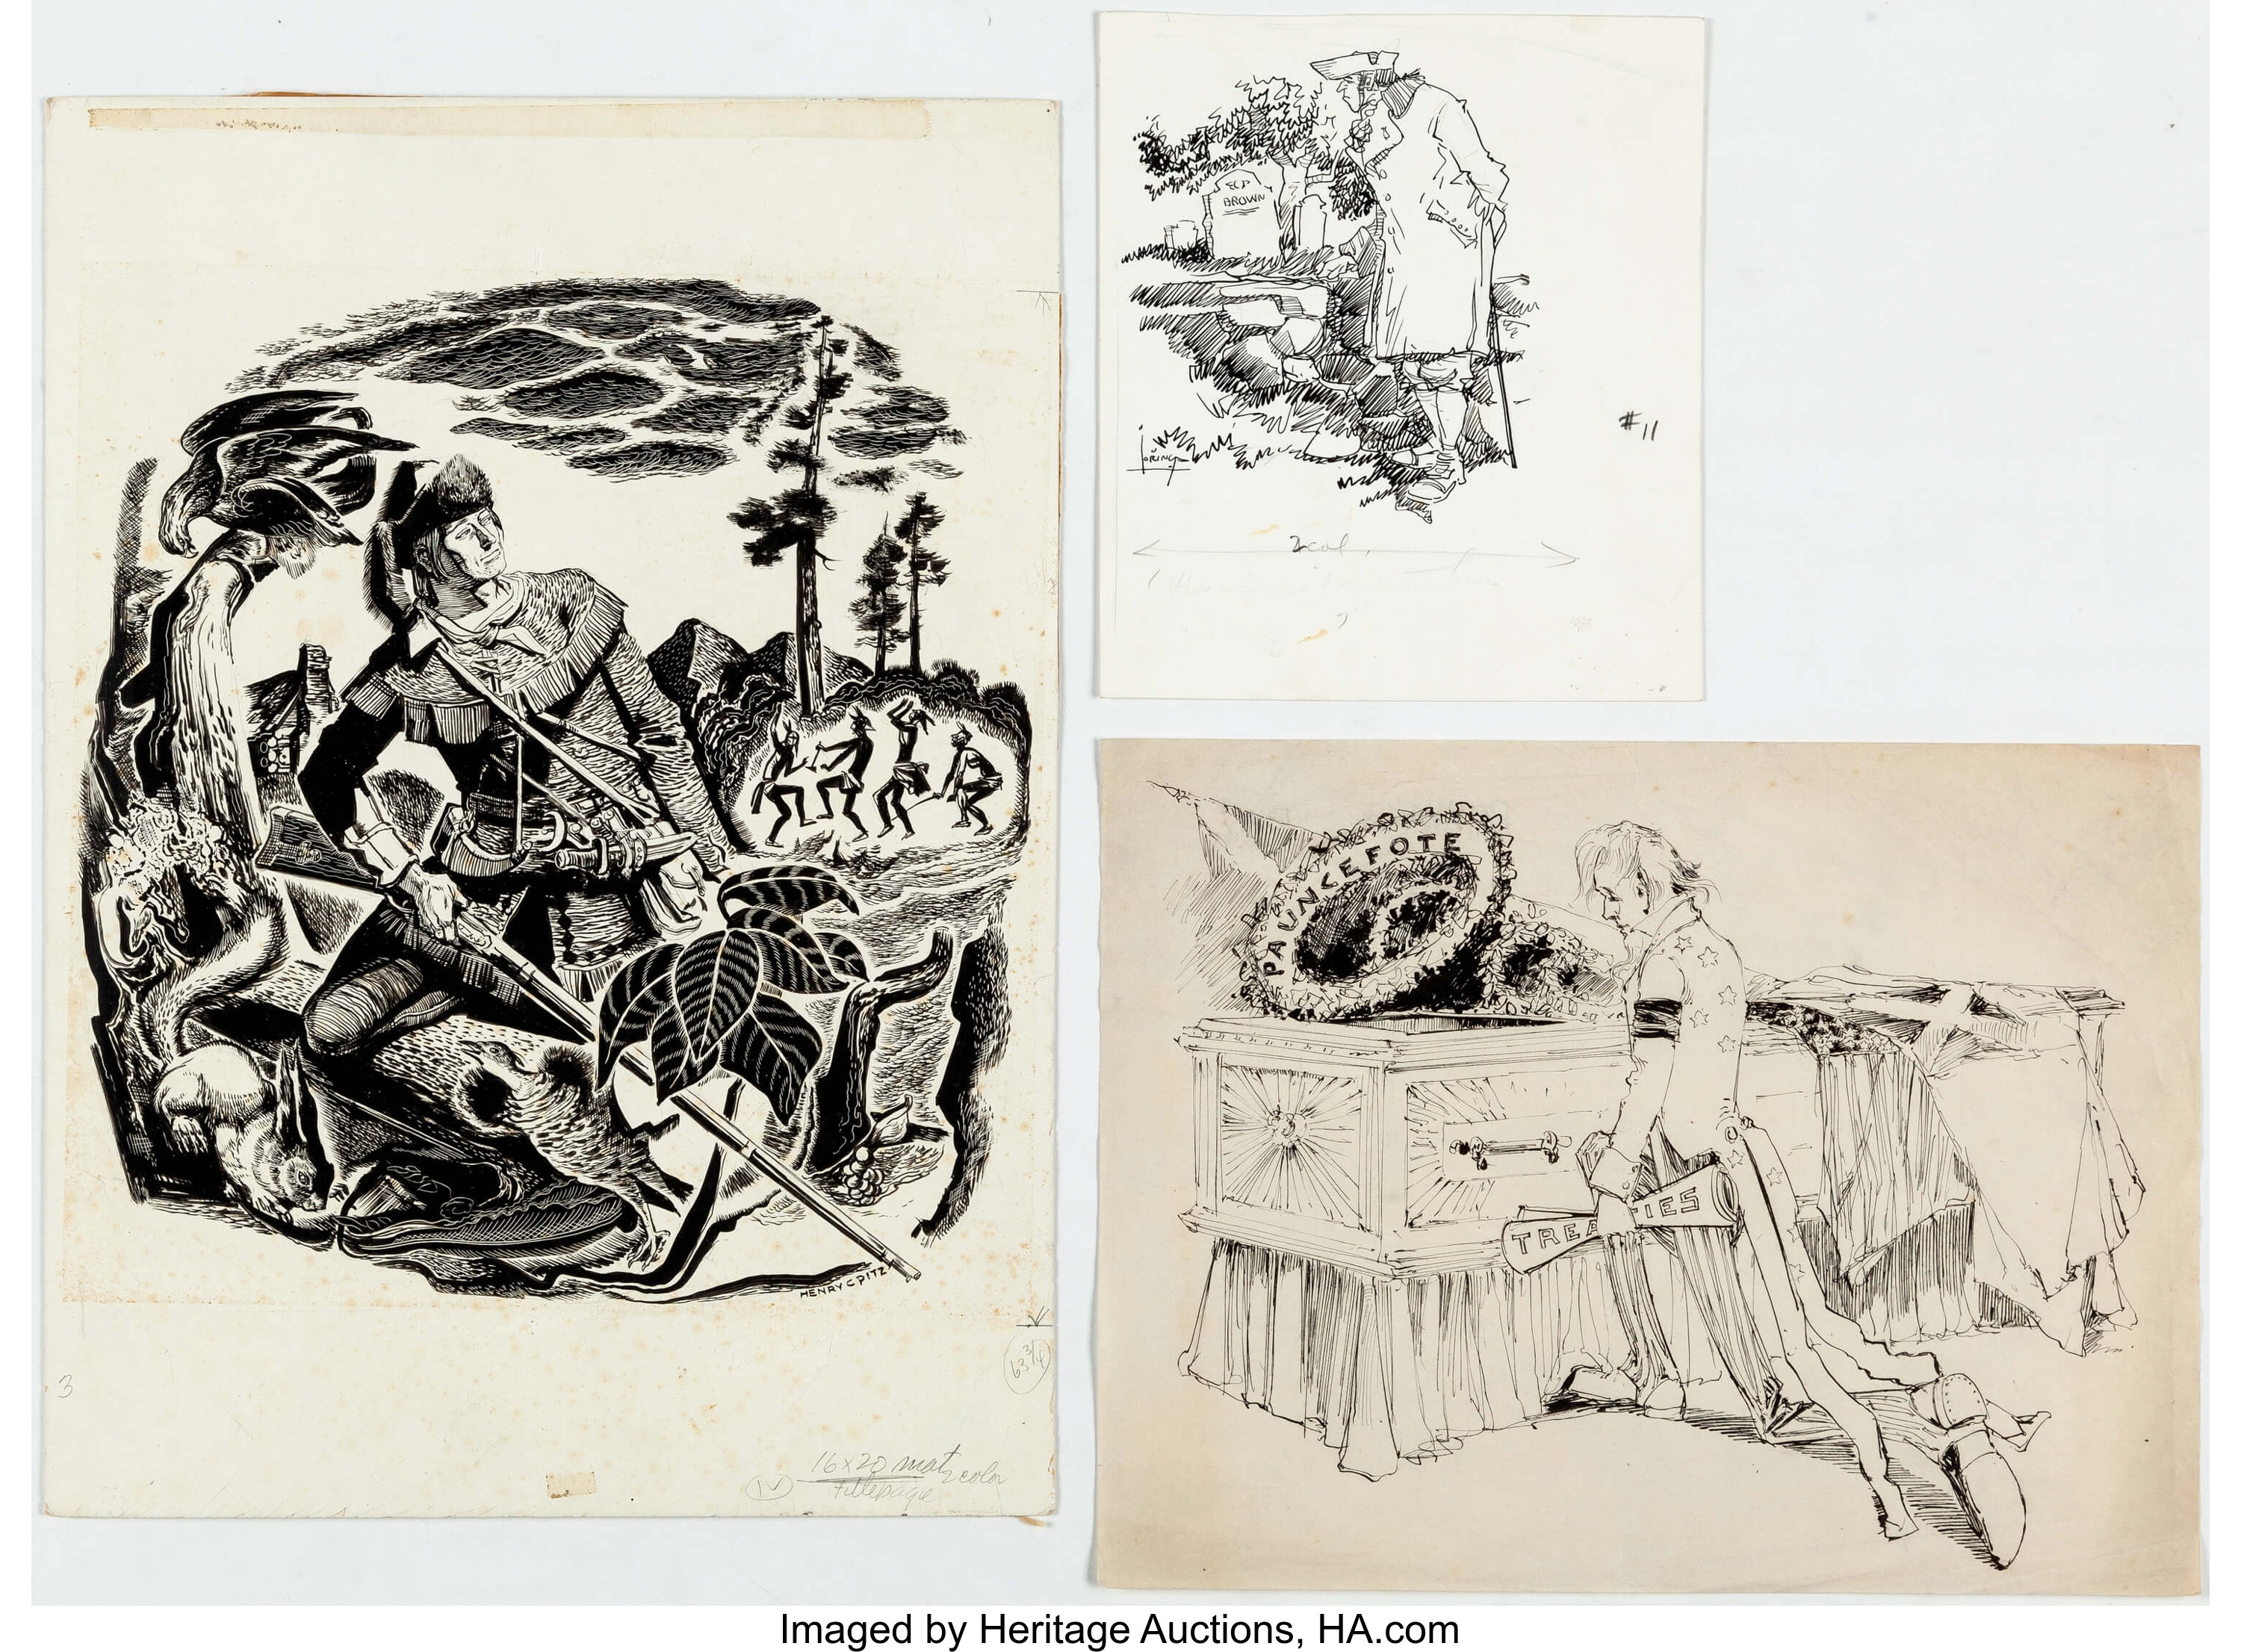 Henry Pitz And Others American Artist Magazine Cover And Additional Lot 11140 Heritage Auctions